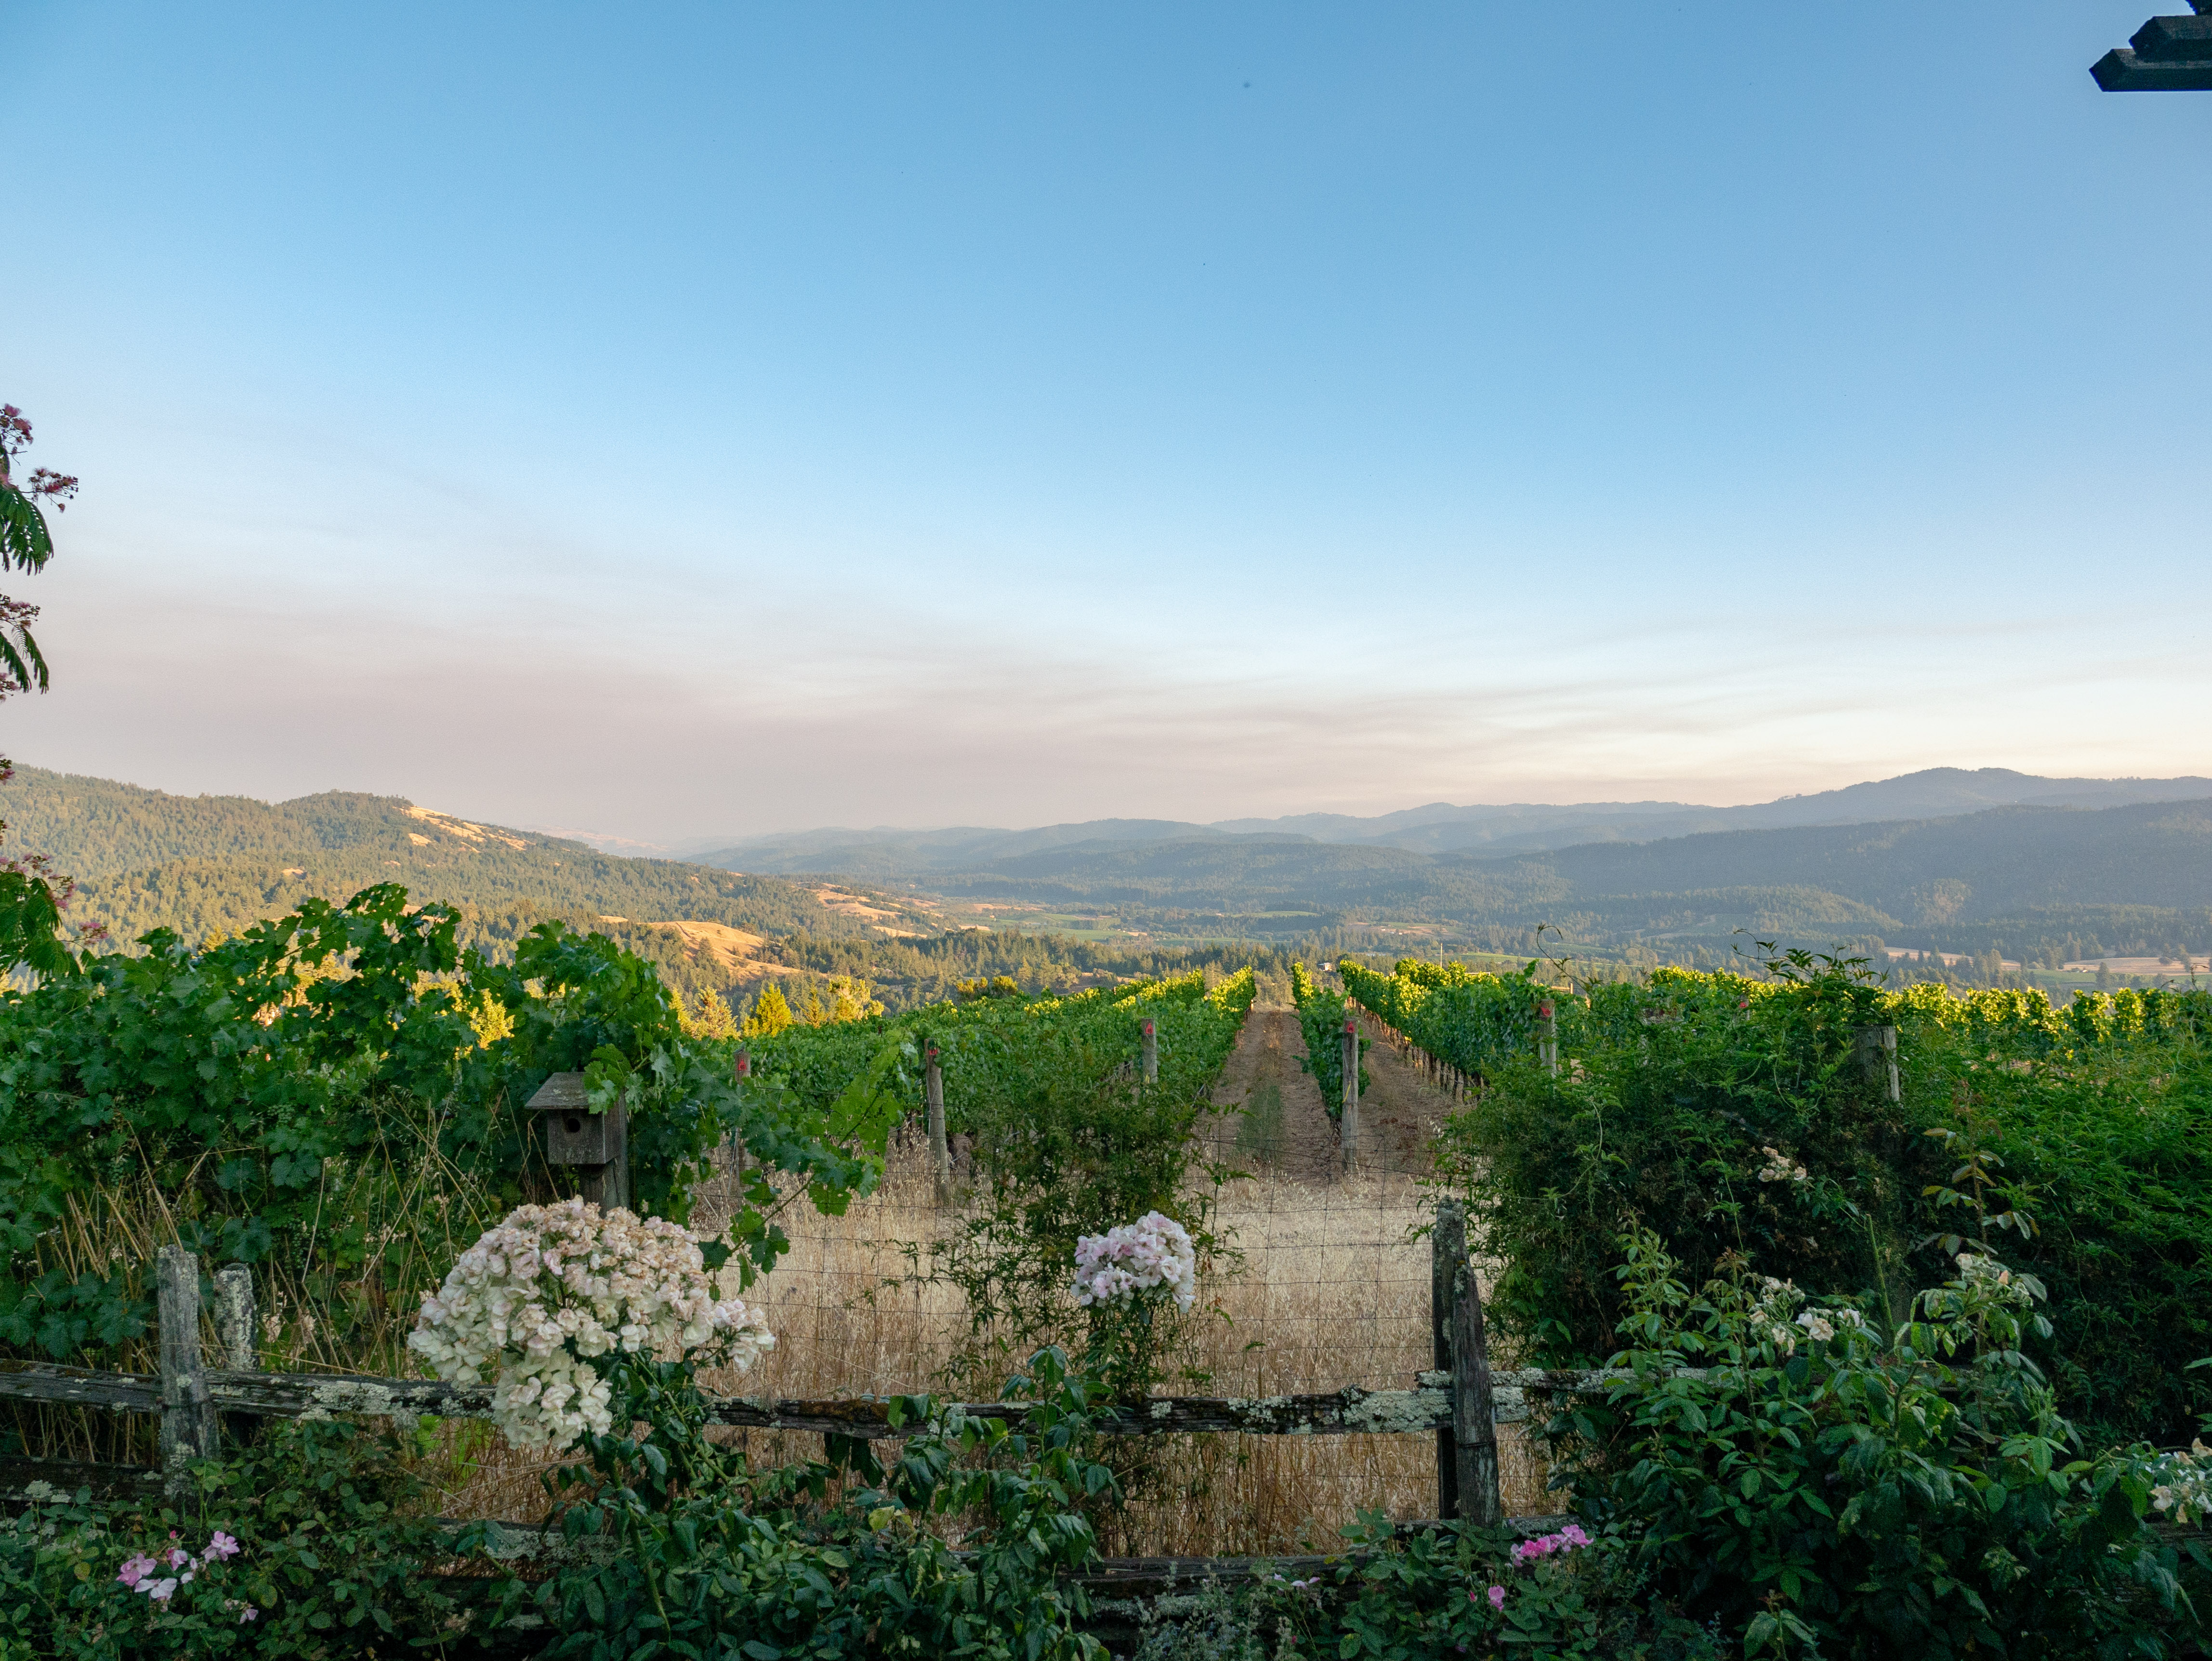 looking over the vineyard to the valley below